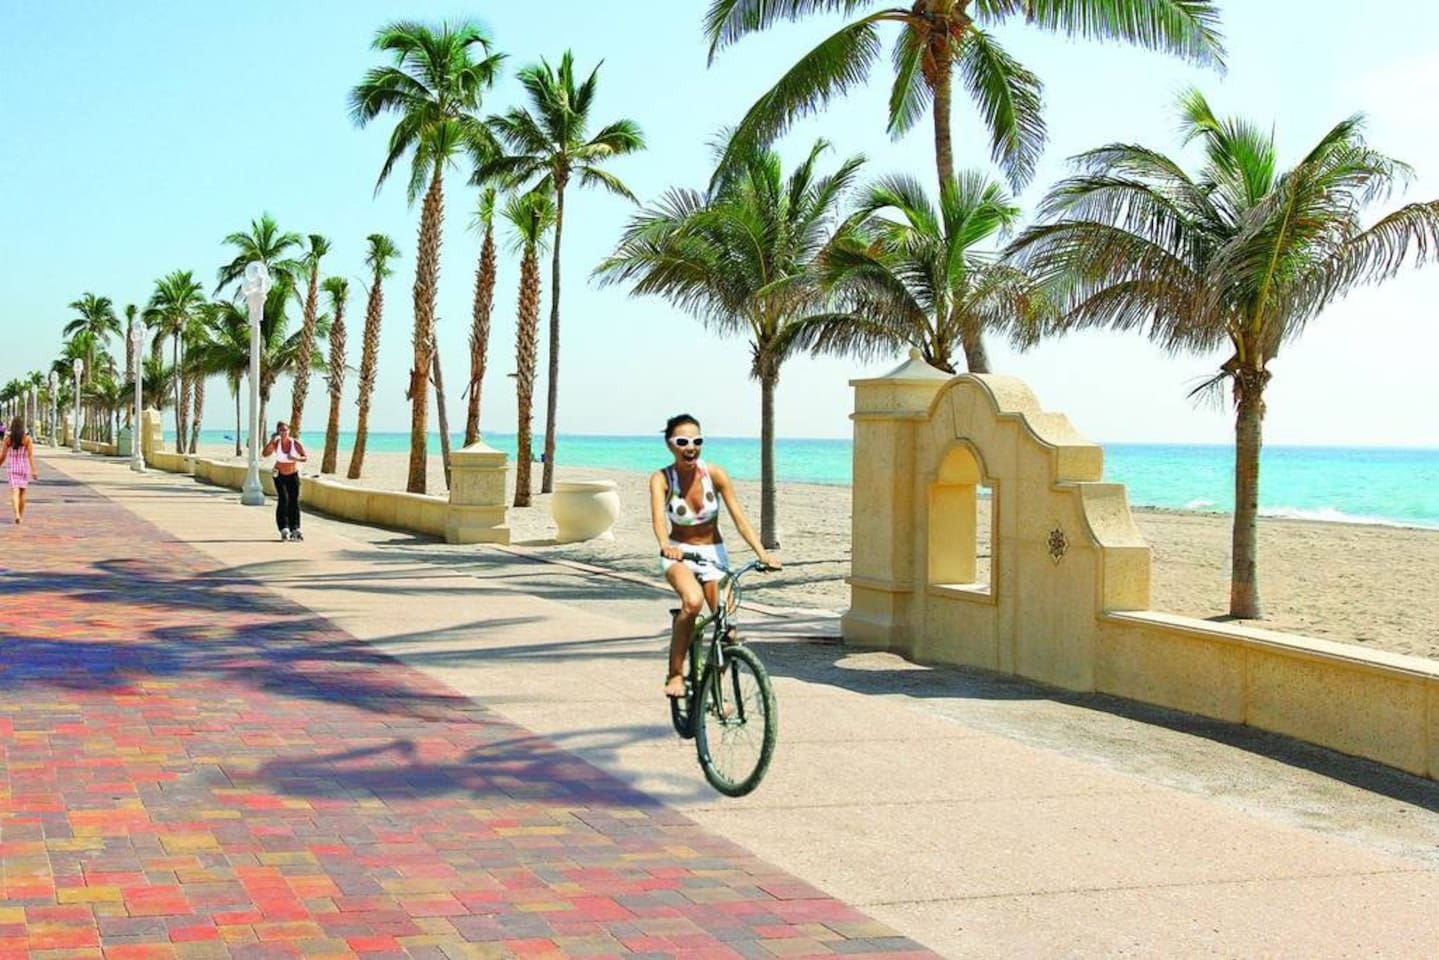 Hollywood Boardwalk just 9 minutes away where you may walk with your family and friends, take a dip at the beach, bike, skate or run under the great Florida sunshine.